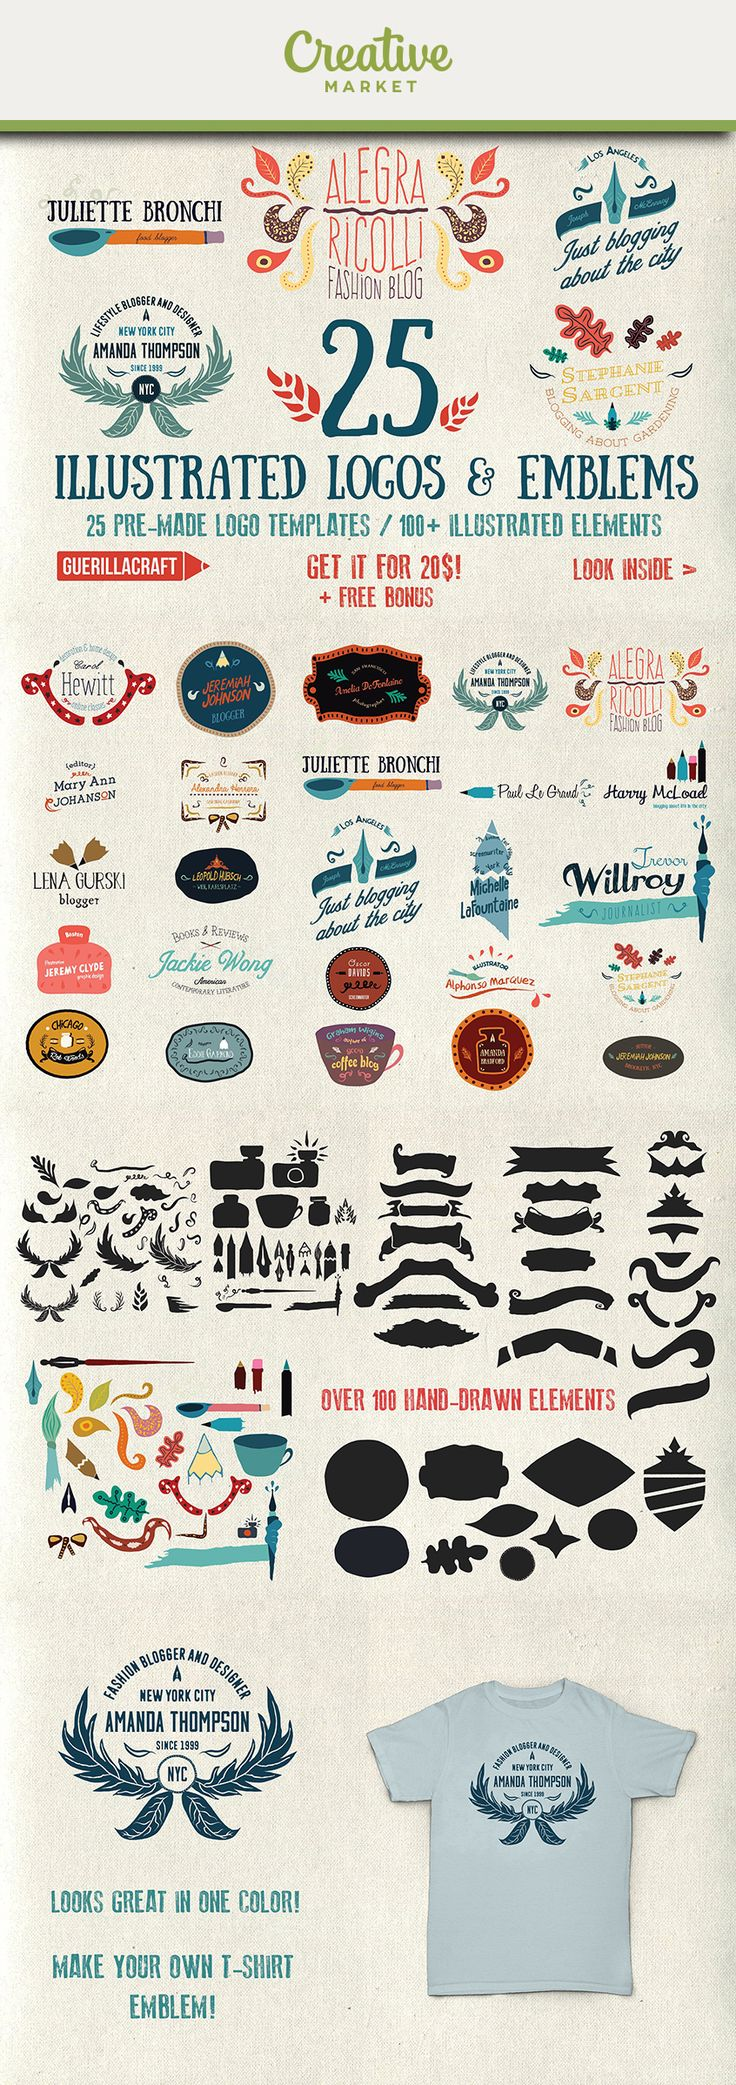 Ad: 25 brand new illustrated logo and emblem templates that will brighten your design. Everything is pretty colorful, bold, and fully editable. You can take control over every detail in the design – resize it, make variations, choose your favorite font and color palette.This series is dedicated to all bloggers, journalist, creative writers or everyone that loves writing! There is over 100 mostly hand-drawn elements - pencil, pens, inks, tips, curls, swirls, flowers, etc. Photoshop…